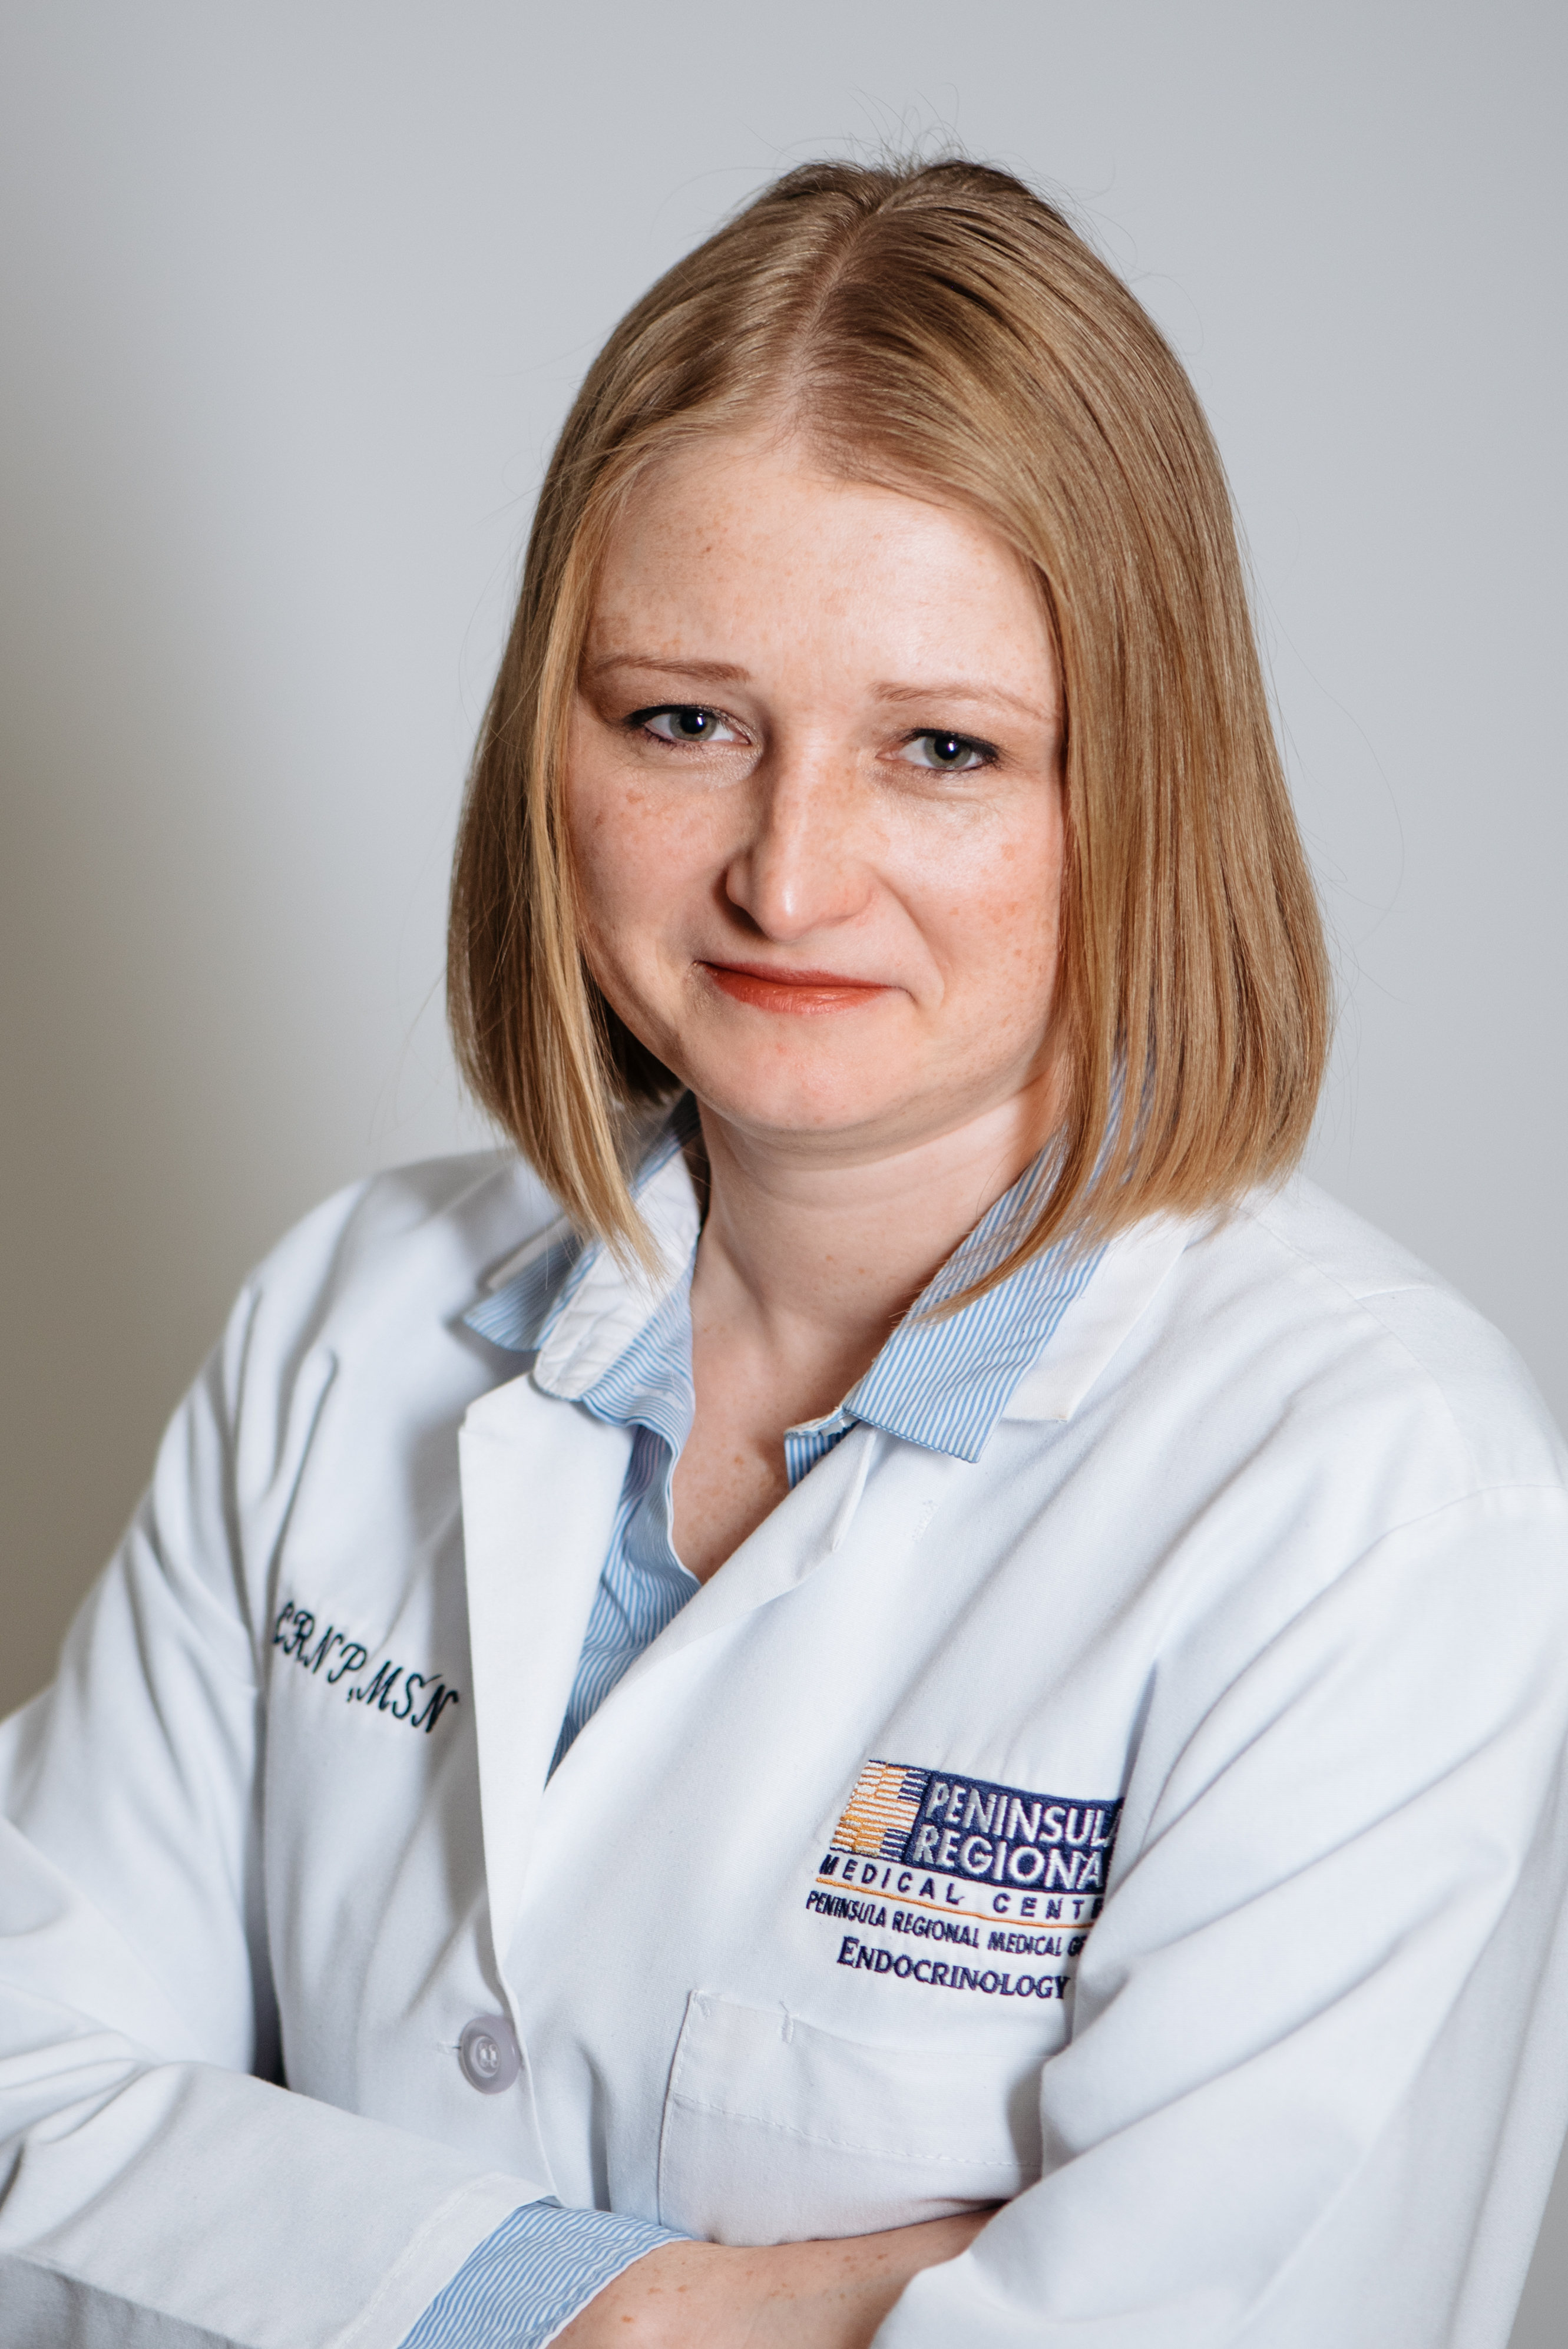 indre-doyle-color-np-endocrinologist.jpg